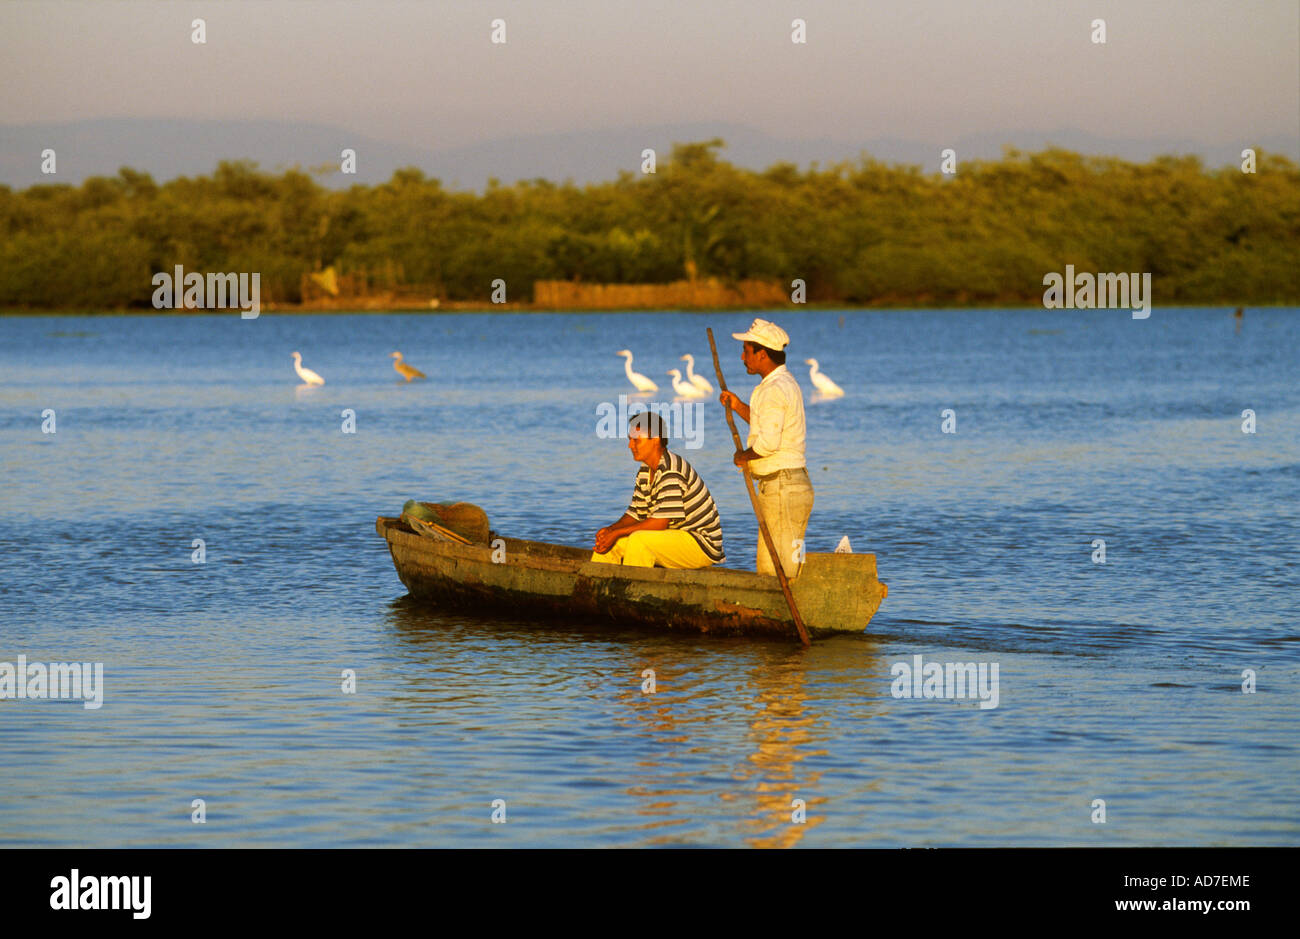 two men in boat Mexico Nayarit Mexcaltitan - Stock Image